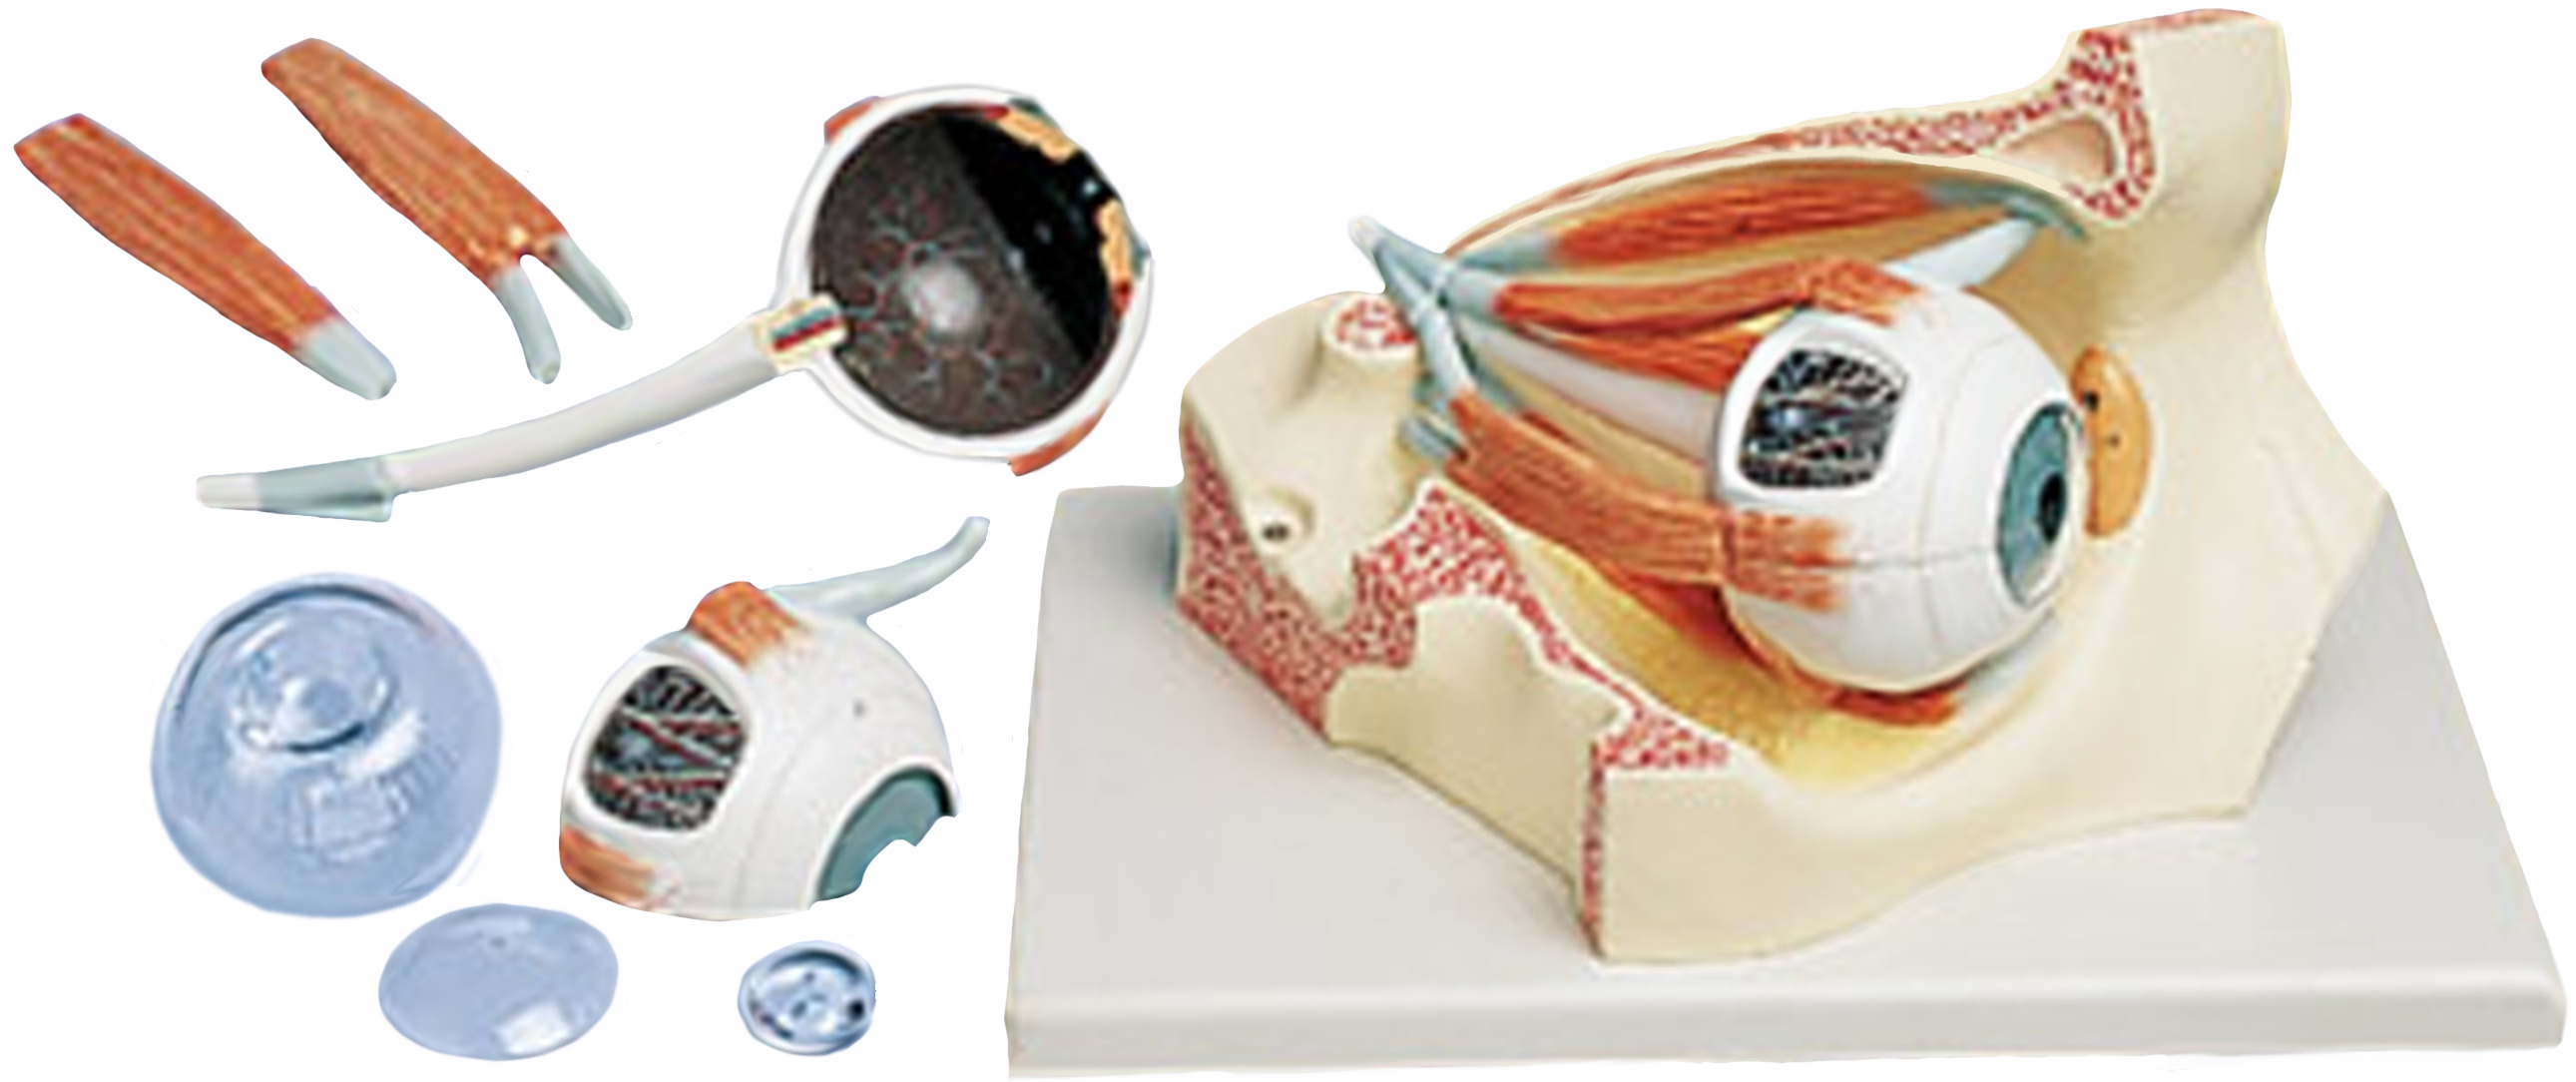 Human Eye Models - Cross Section, Cornea Conditions, Cataract Eye